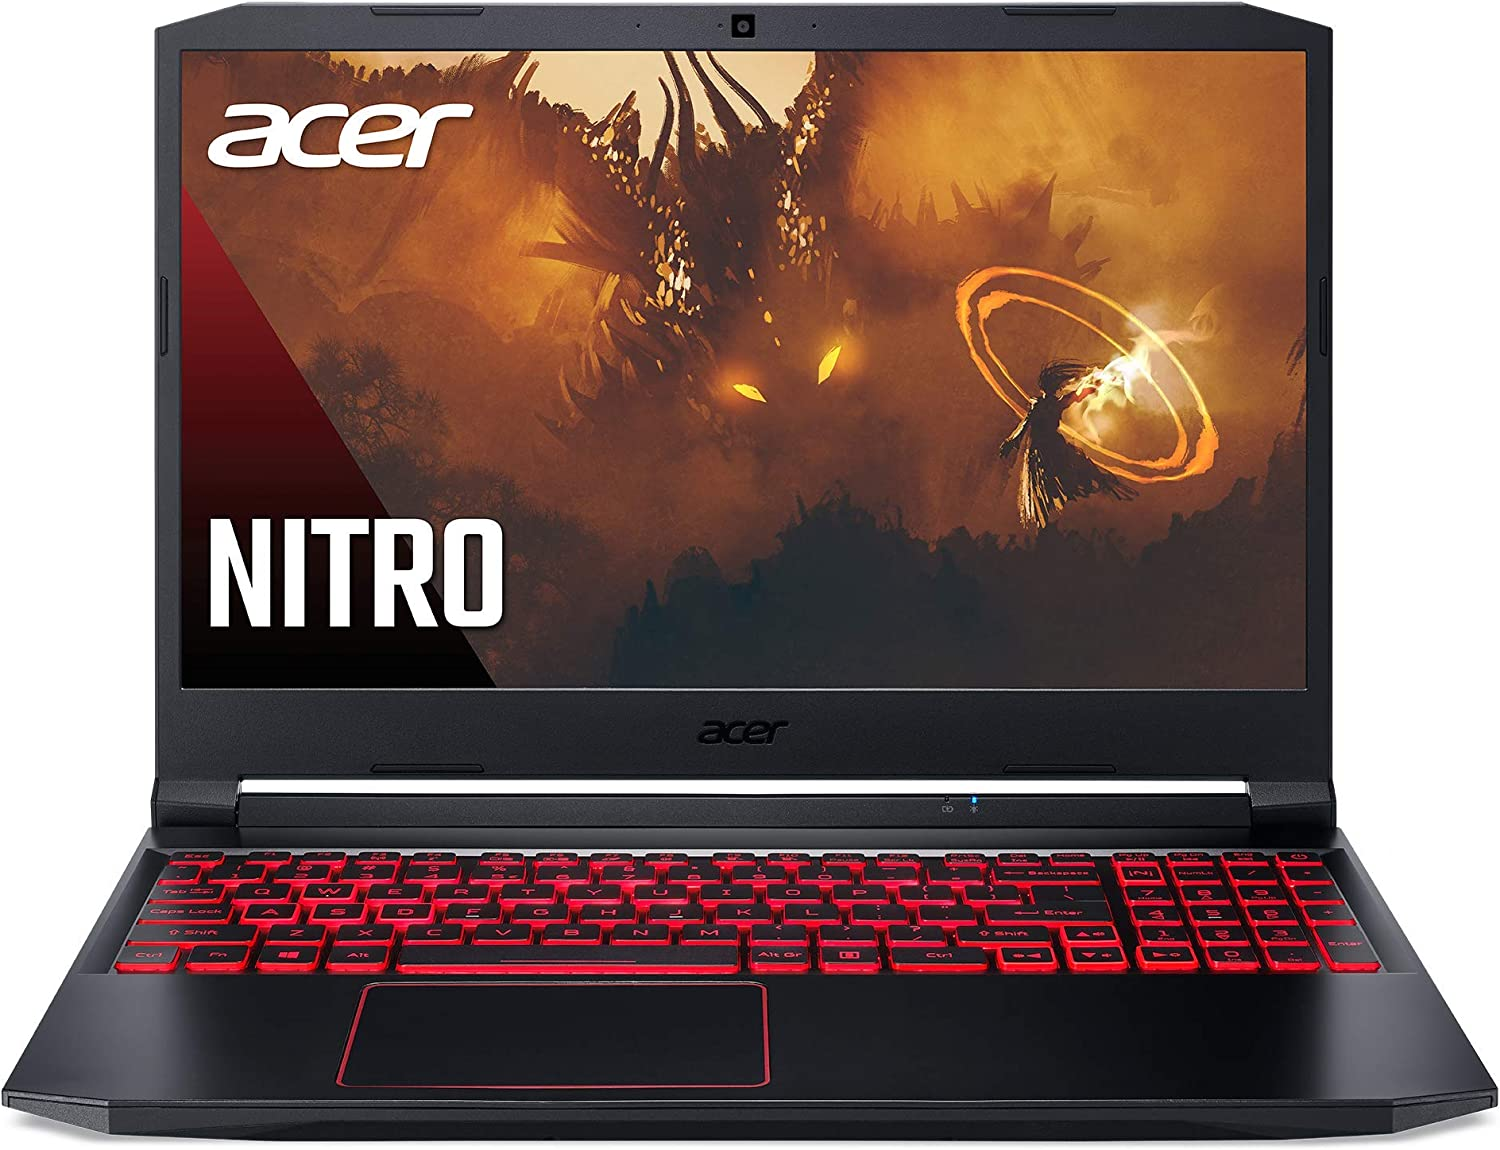 "Acer Nitro 5 Gaming Laptop, AMD Ryzen 5 4600H Hexa-Core Processor, NVIDIA GeForce GTX 1650 Ti, 15.6"" Full HD IPS Display, 8GB DDR4, 256GB NVMe SSD, WiFi 6, DTS X Ultra, Backlit Keyboard, AN515-44-R078"